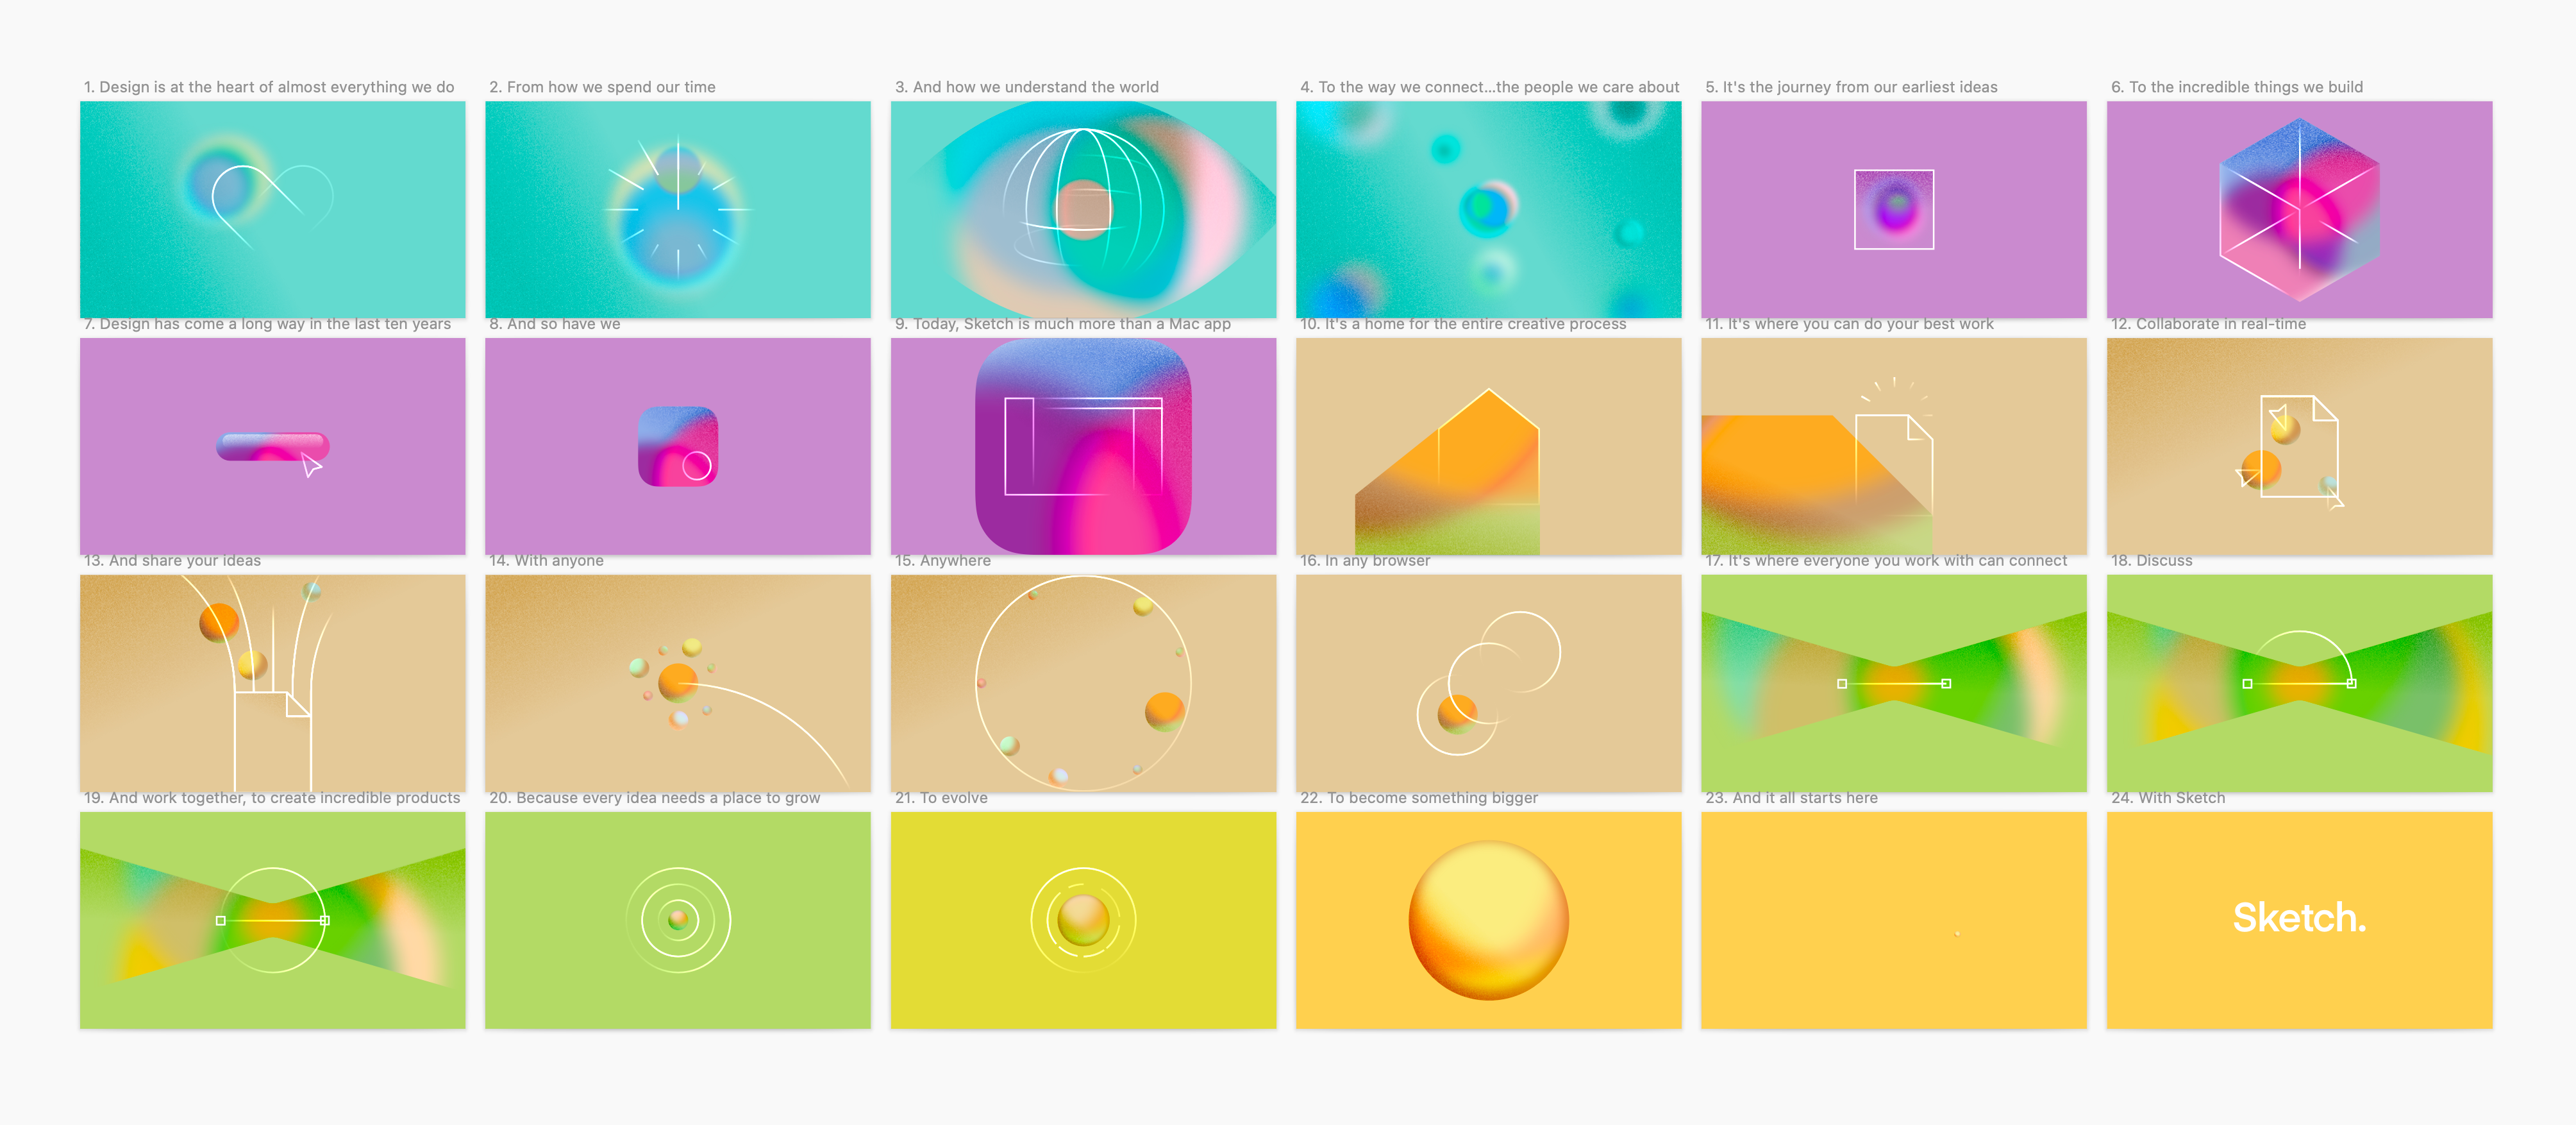 The final storyboard in made in Sketch. Each frame features a unique illustration, with the background colors changing every few frames.